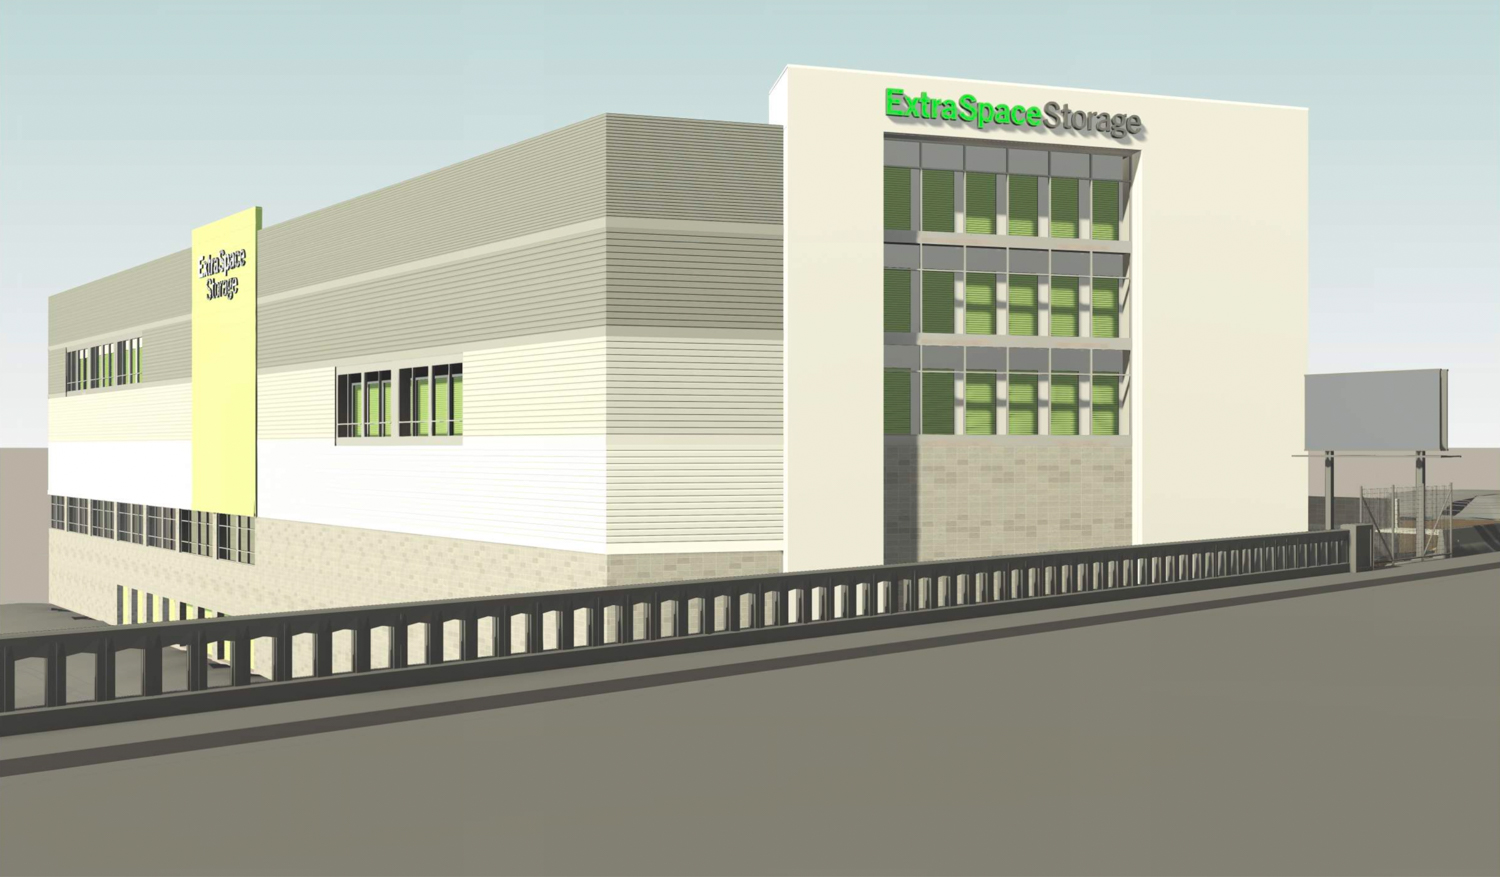 1700 Egbert Avenue Extra Space Storage from Williams Avenue, rendering by James Goodman Architecture